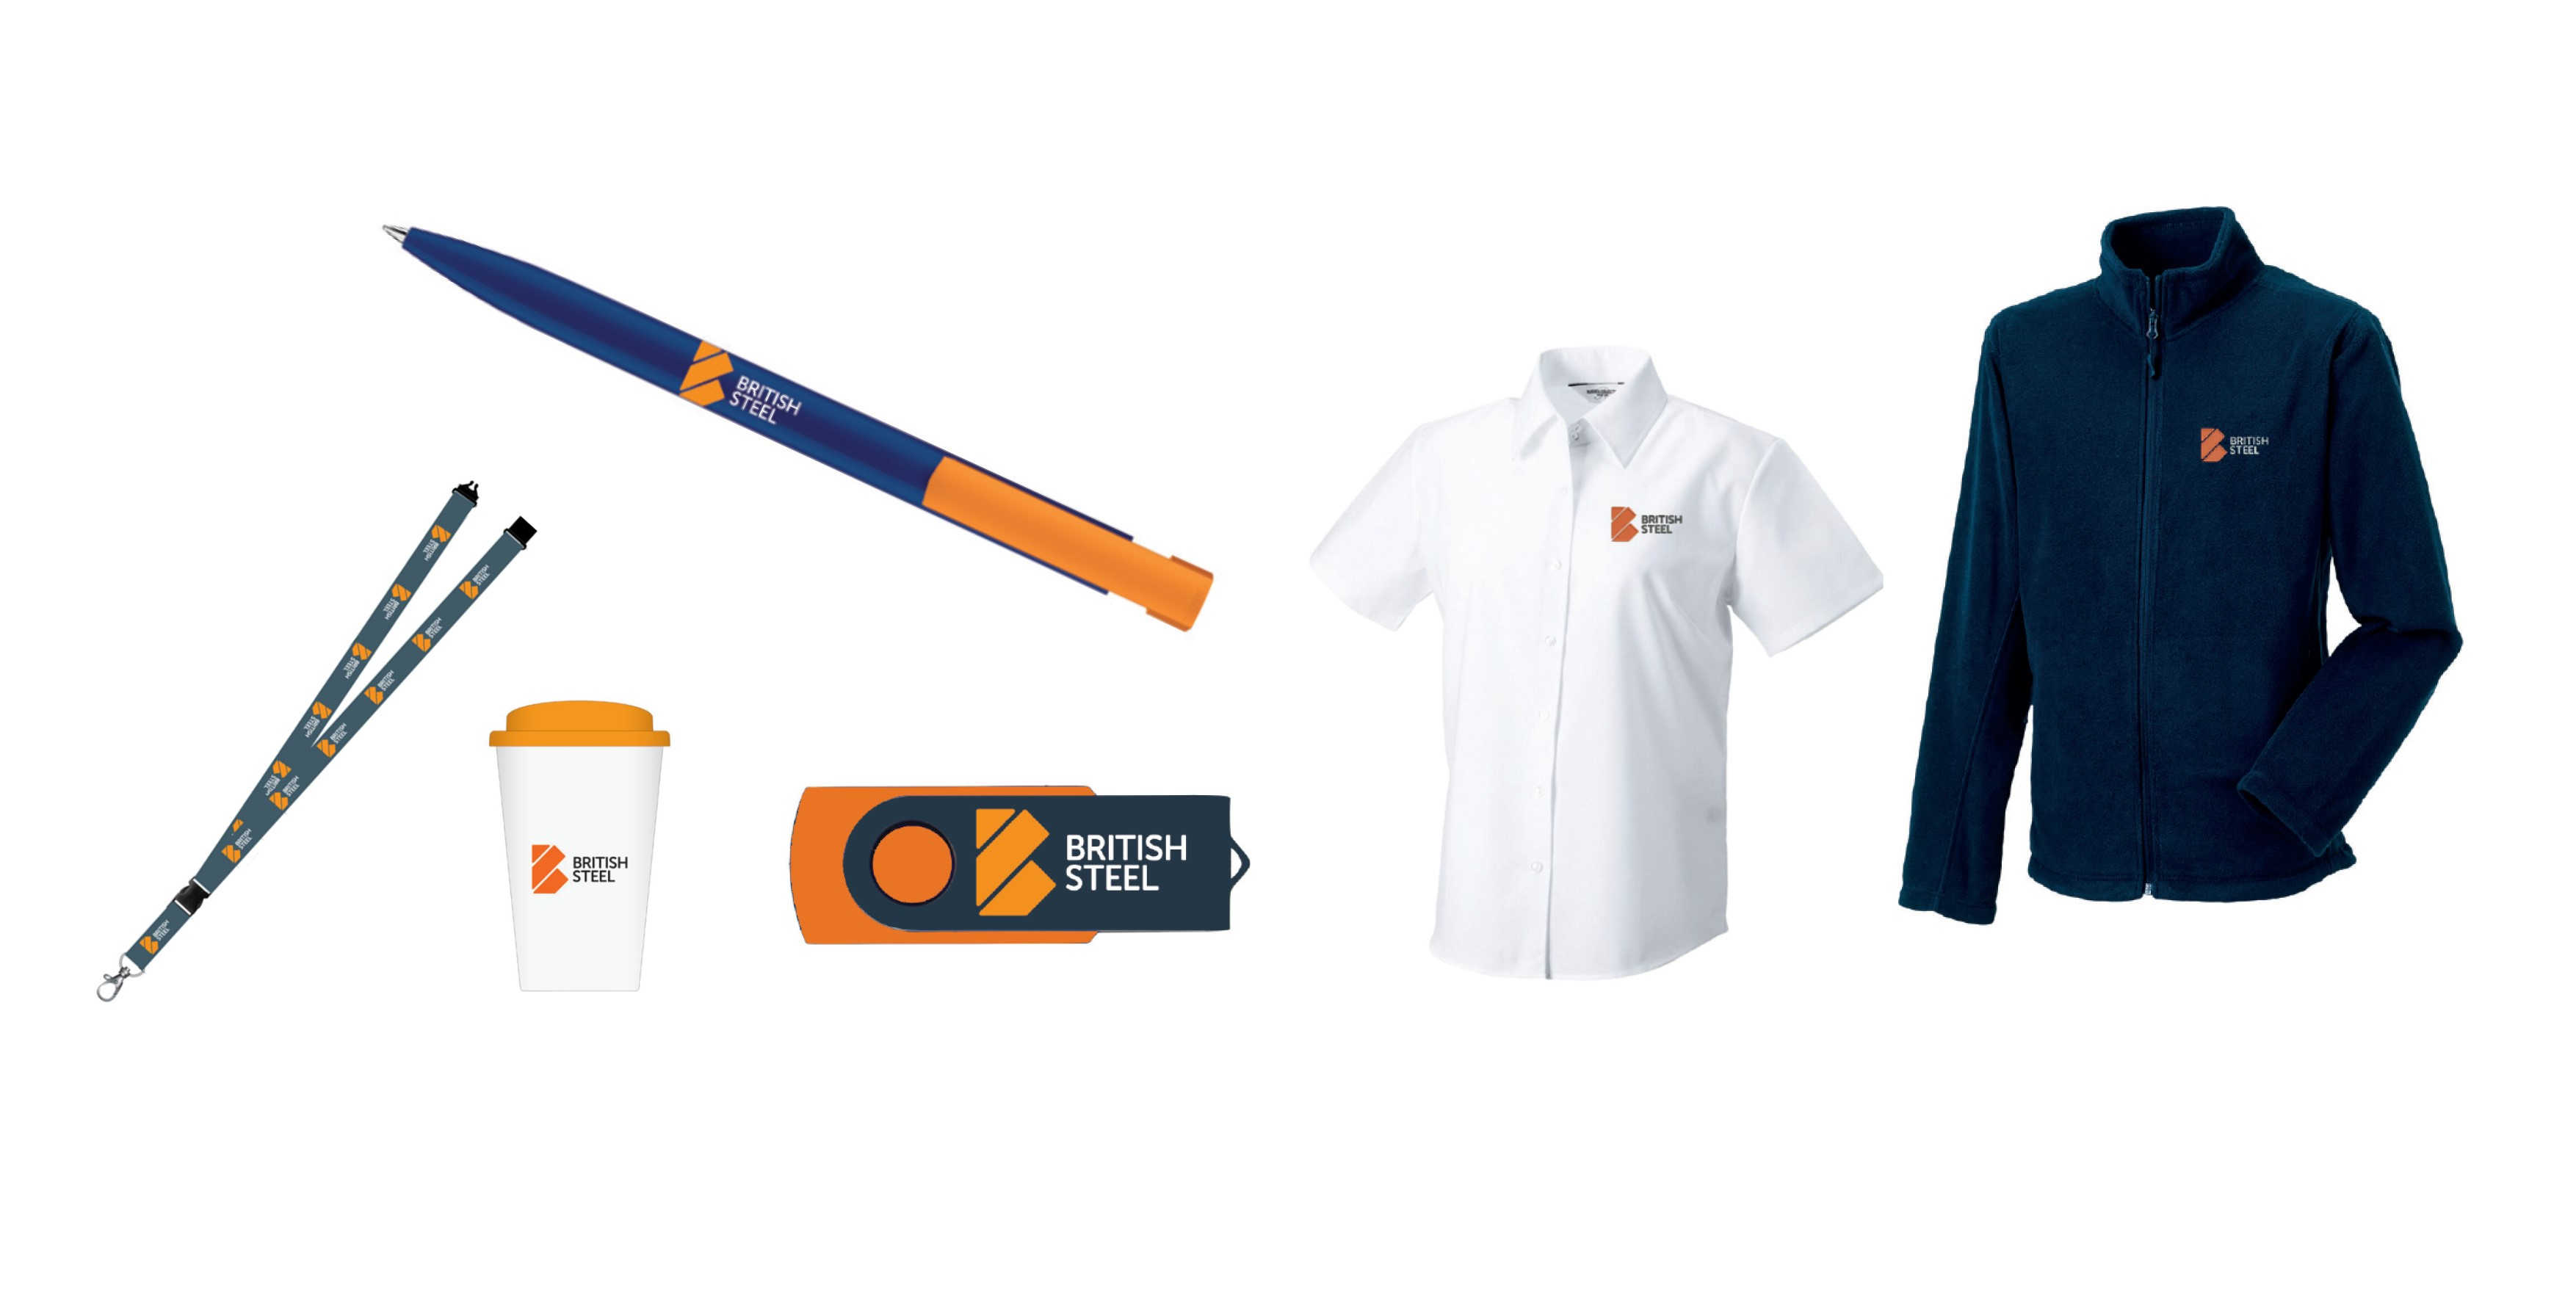 Some of the British Steel merchandise available to order includes pens, USBs, shirts, fleeces and mugs